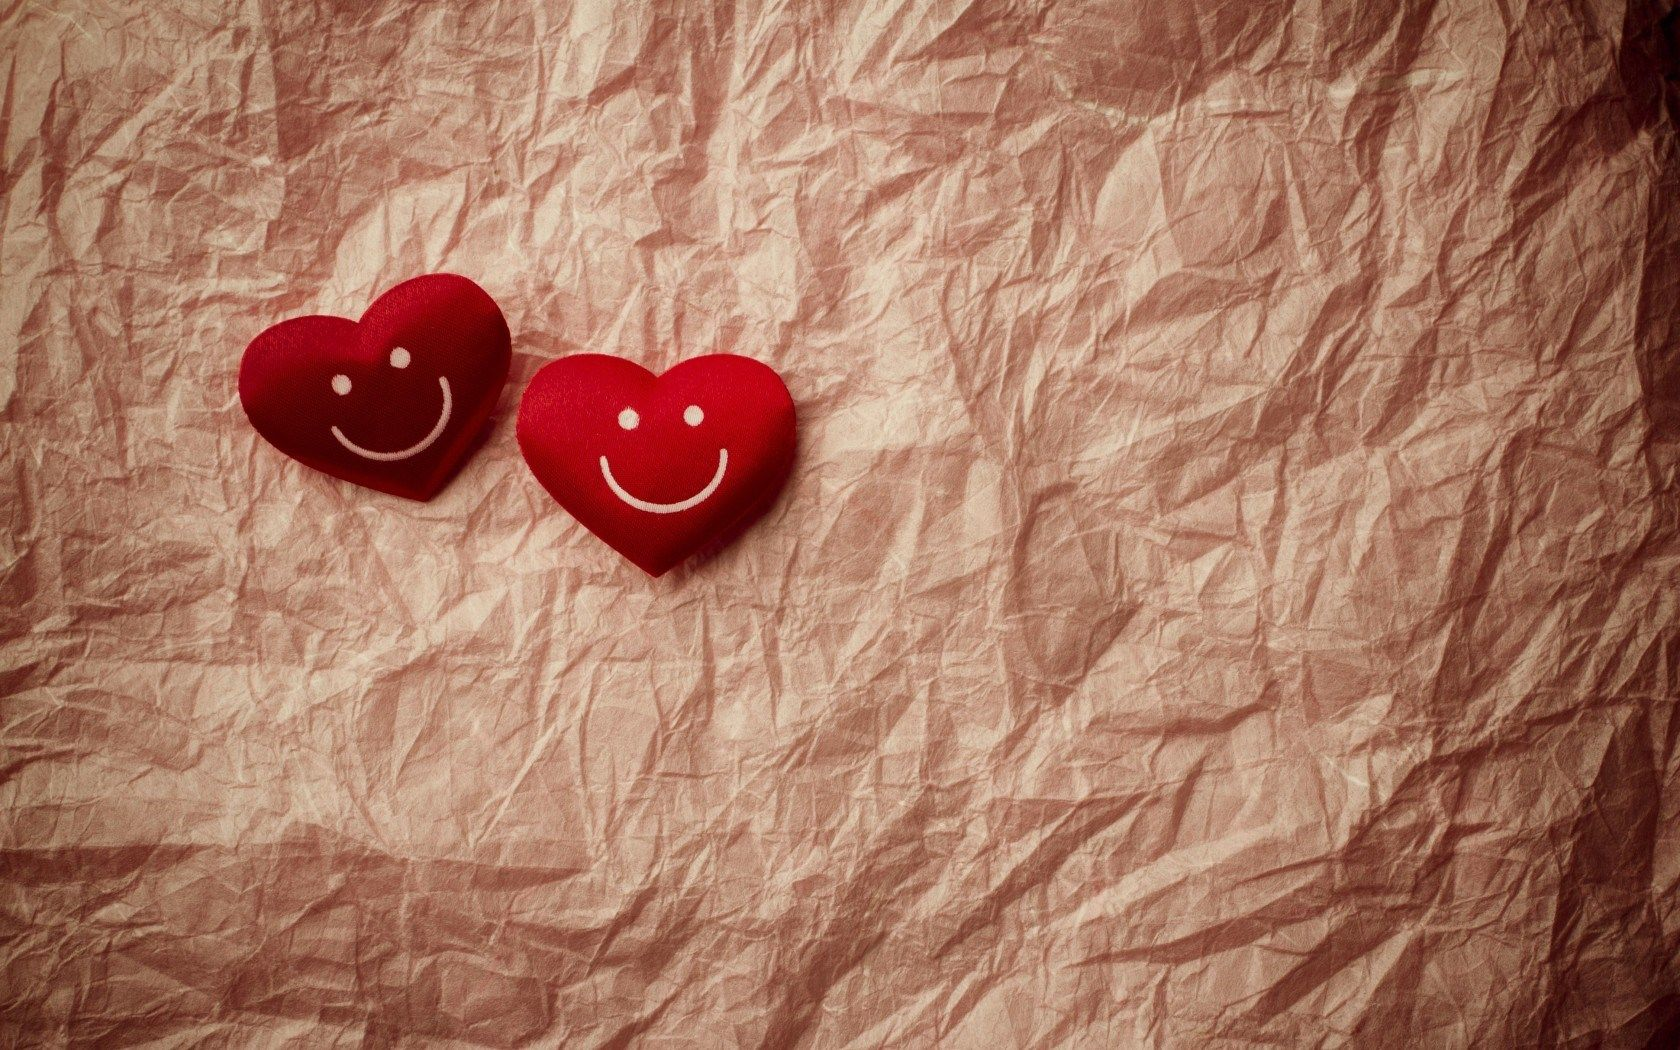 Two Hearts Smile Love Images Free Download 1080p Valentine